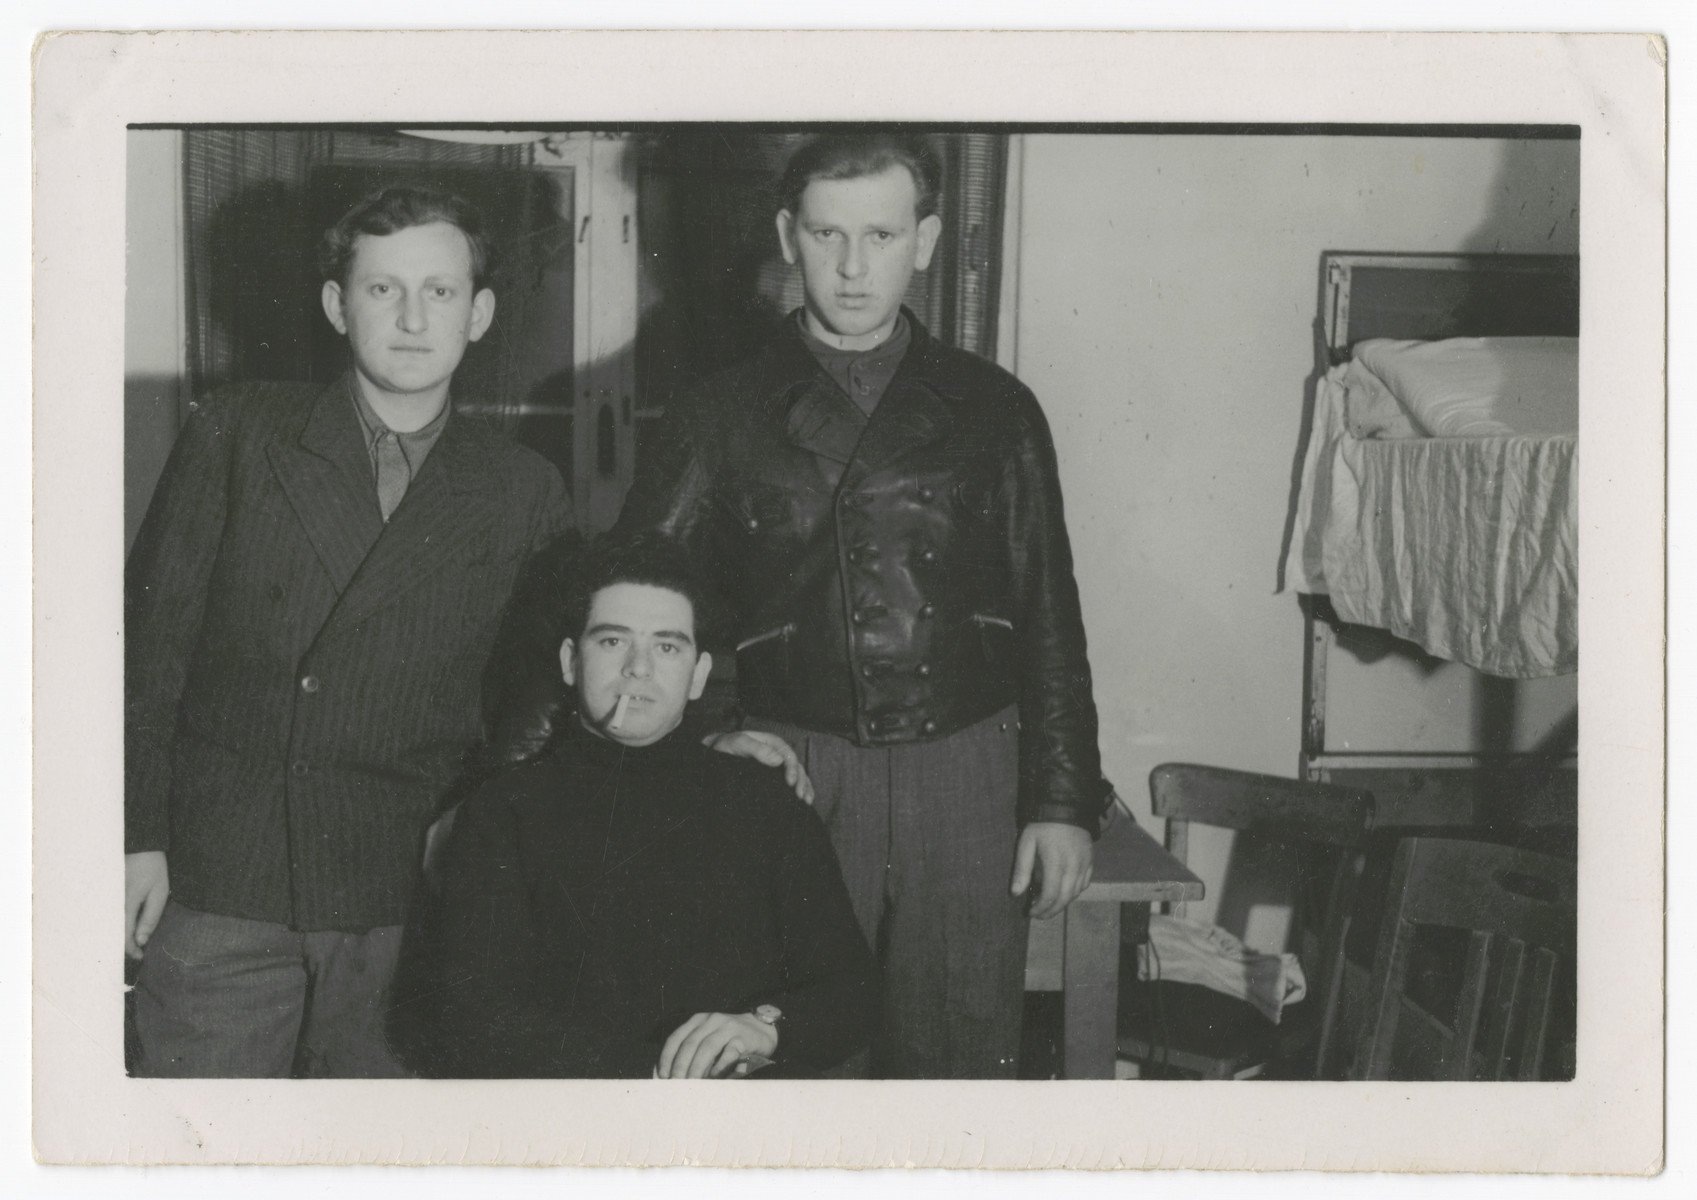 David Rosenzweig poses with his two cousins Ben and Joe Rosenzweig in their apartment in the Bergen-Belsen displaced persons camp.